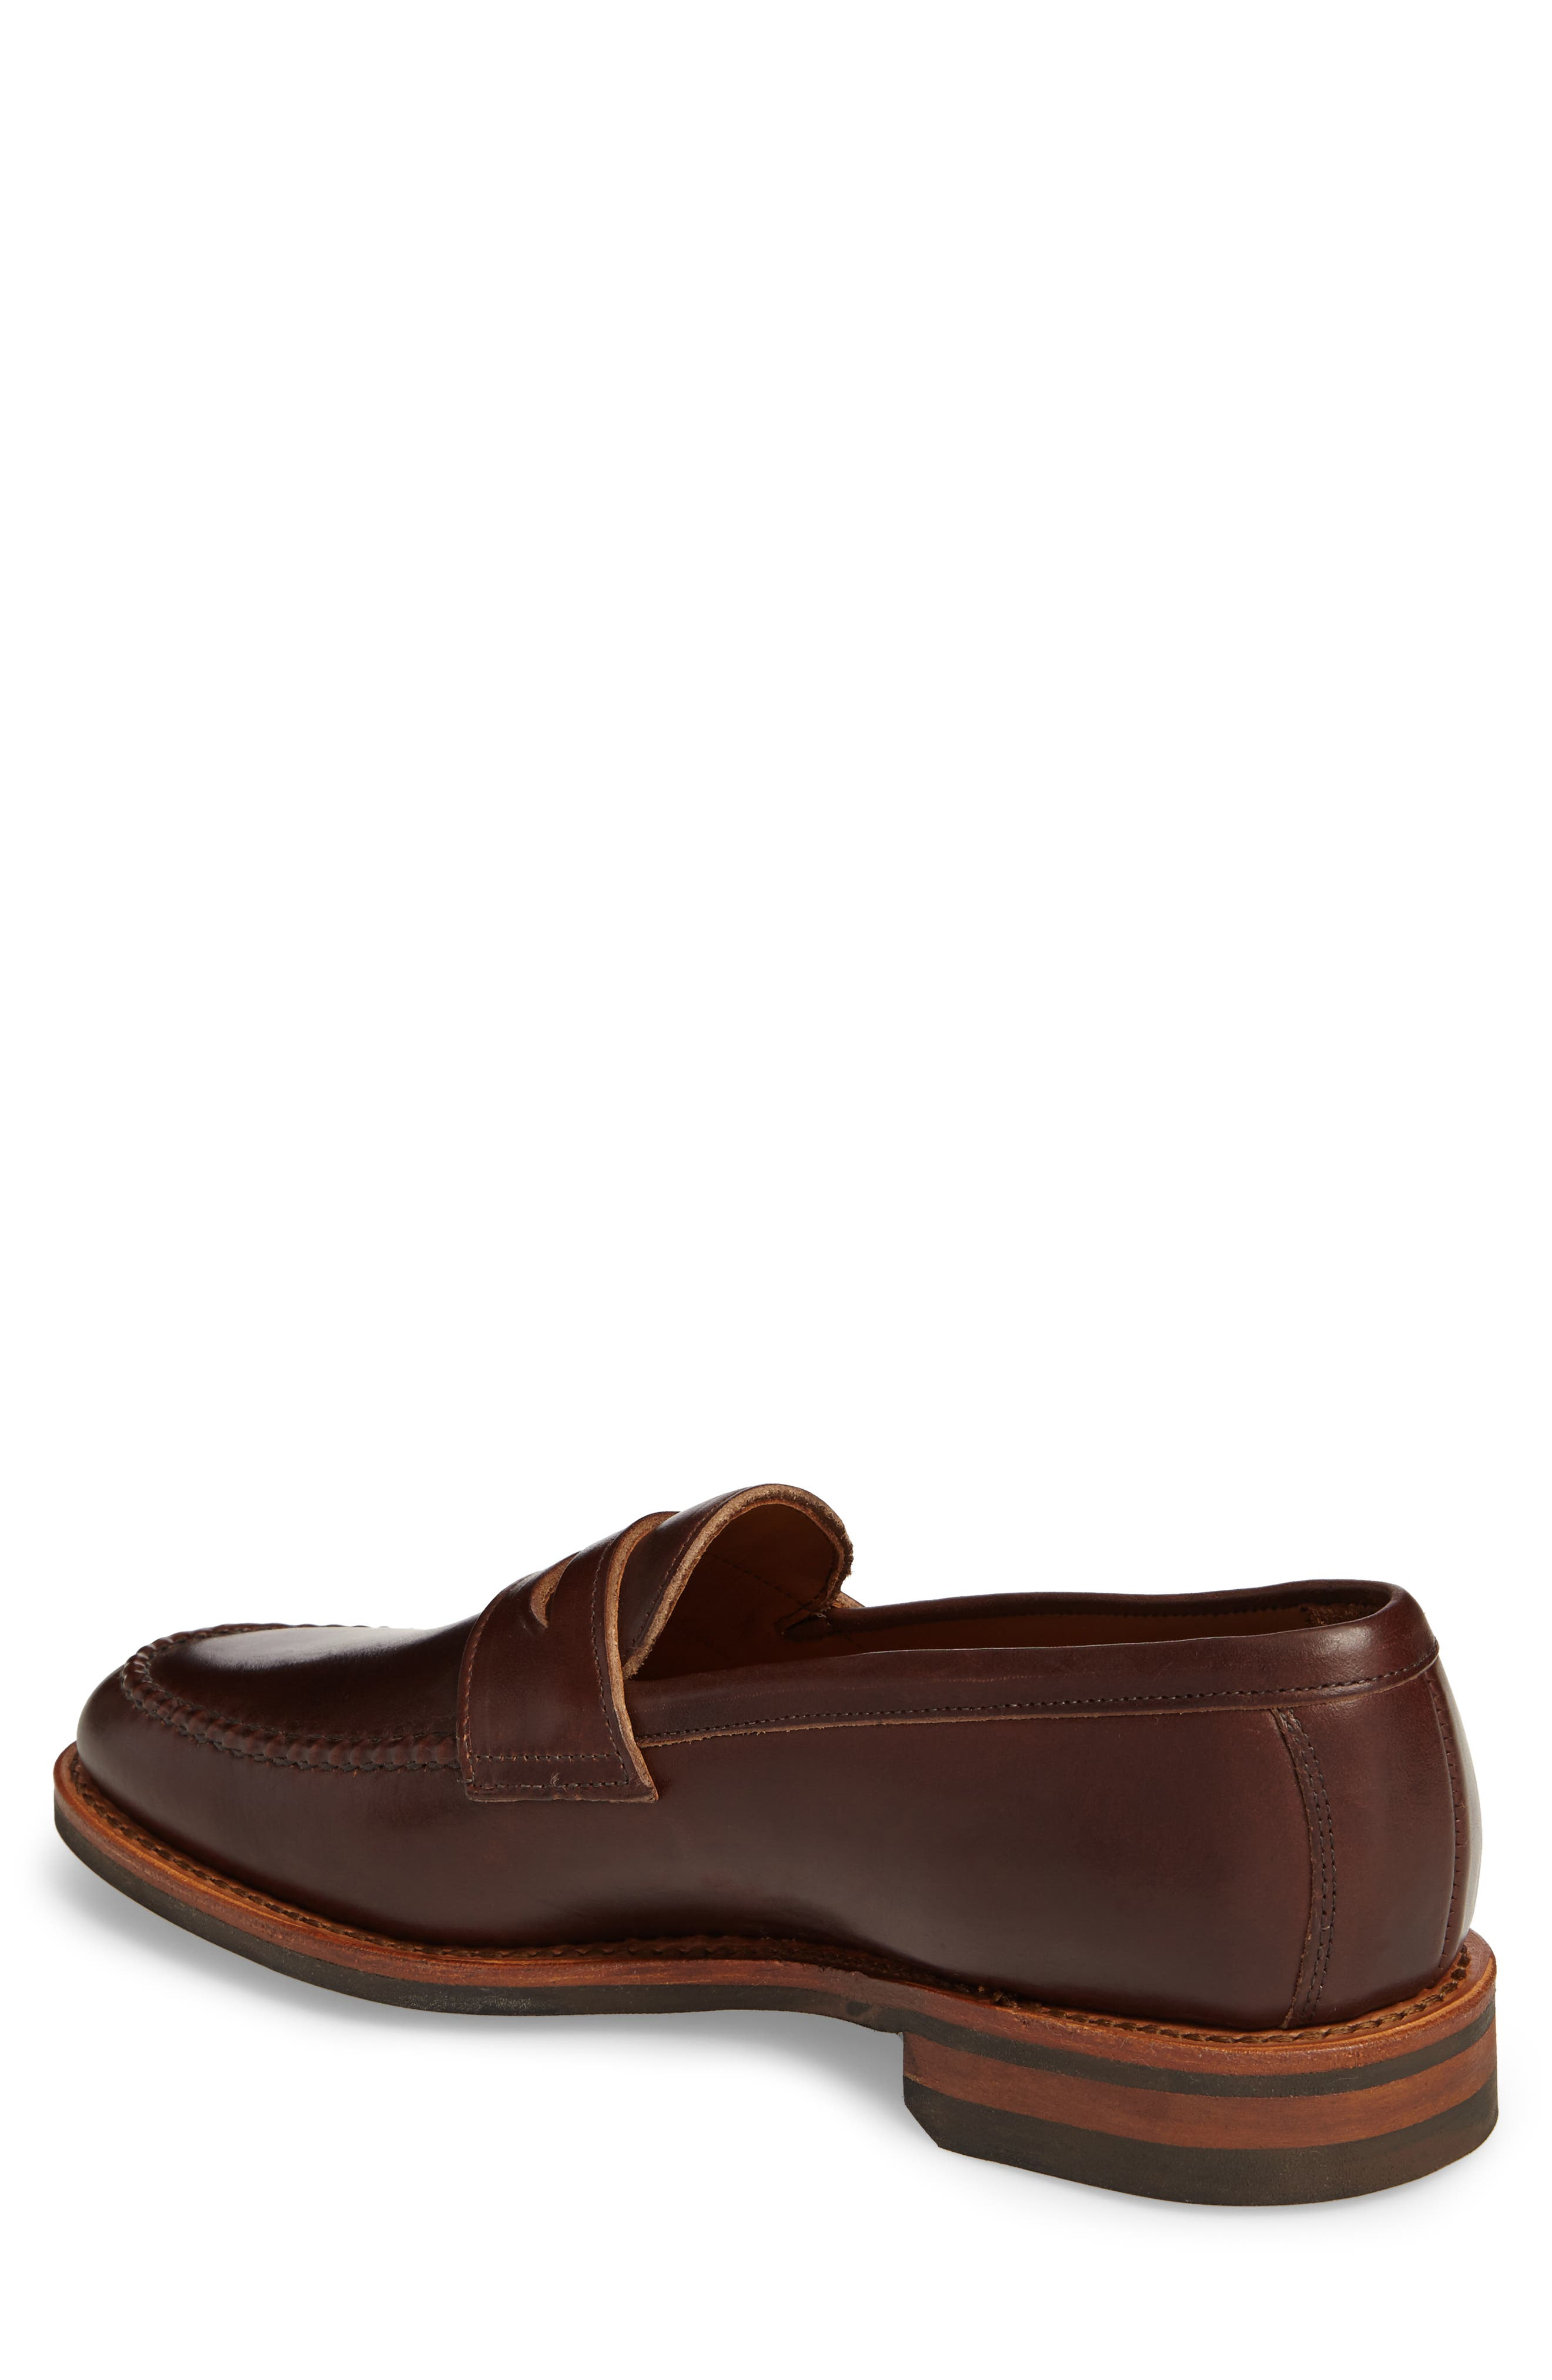 Alternate Image 2  - Allen Edmonds Addison Penny Loafer (Men)